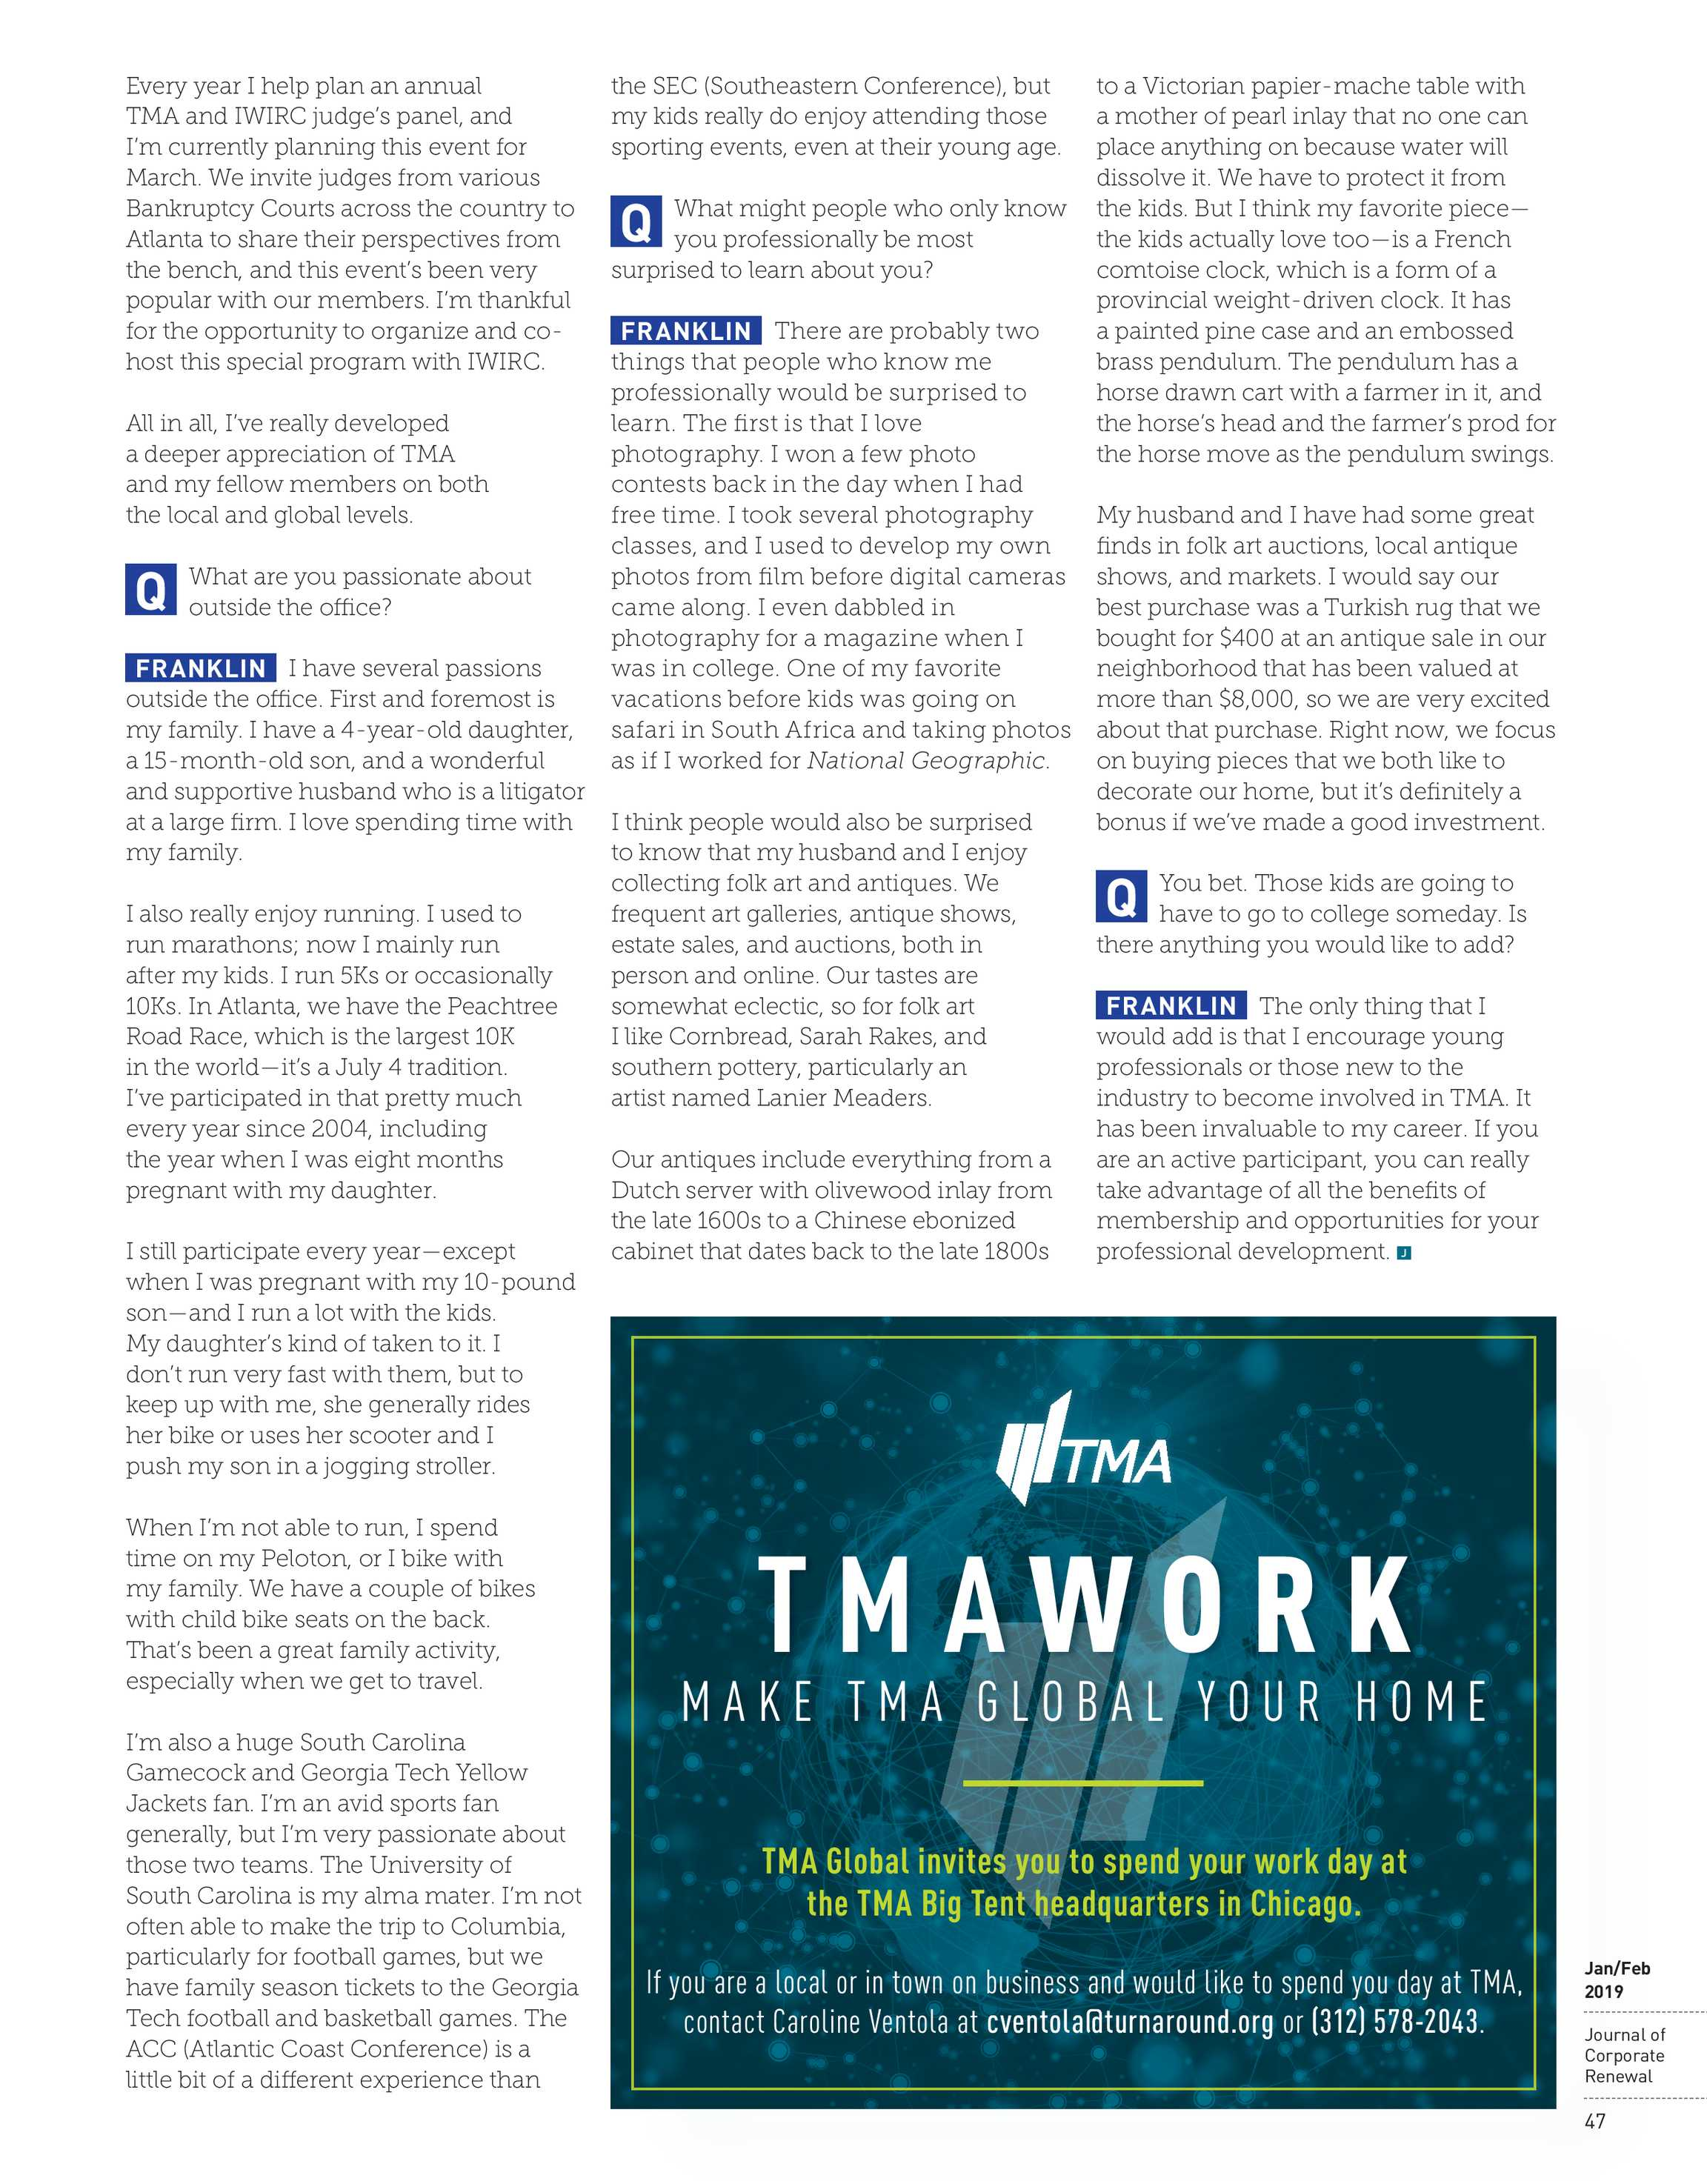 Journal of Corporate Renewal - January/February 2019 - page 48